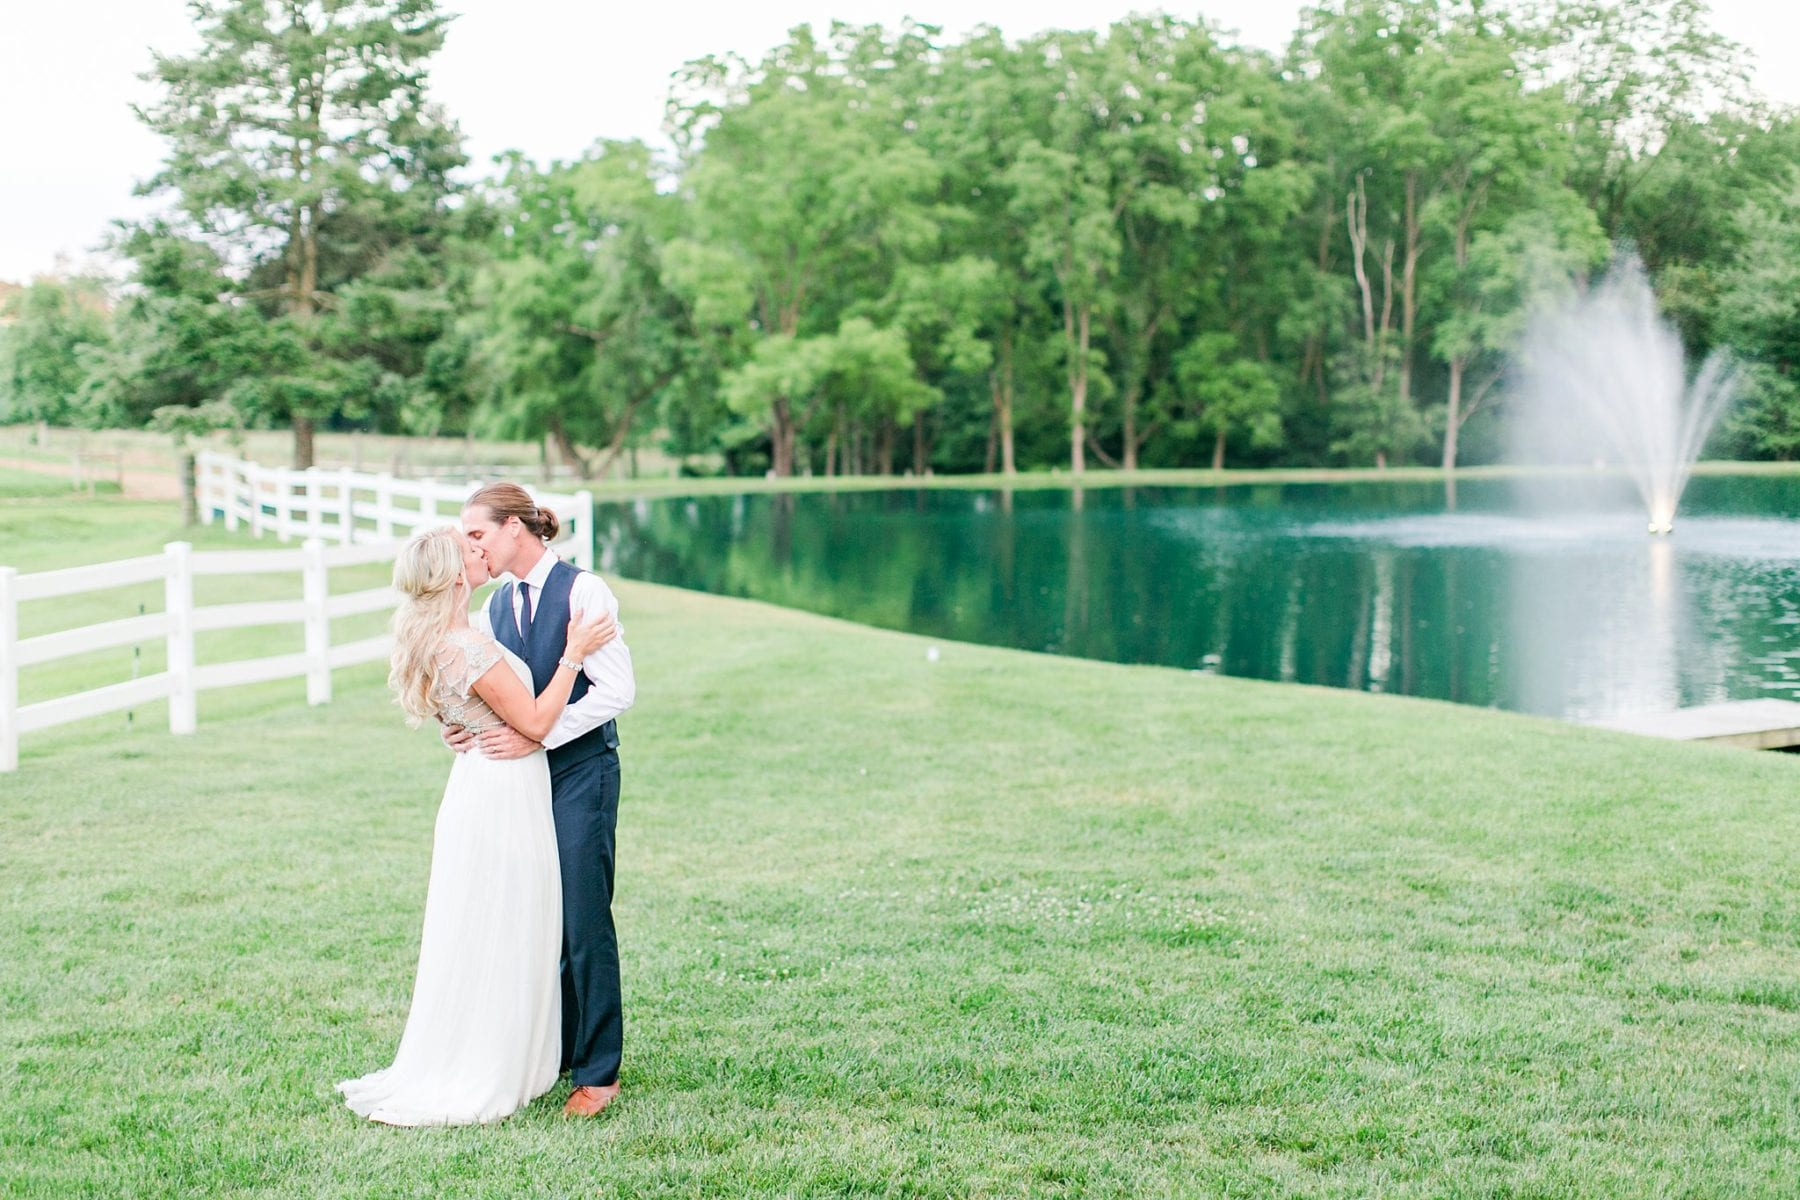 Pond View Farm Wedding Photos Maryland Wedding Photographer Kristen & Ryan Megan Kelsey Photography Blog-268.jpg